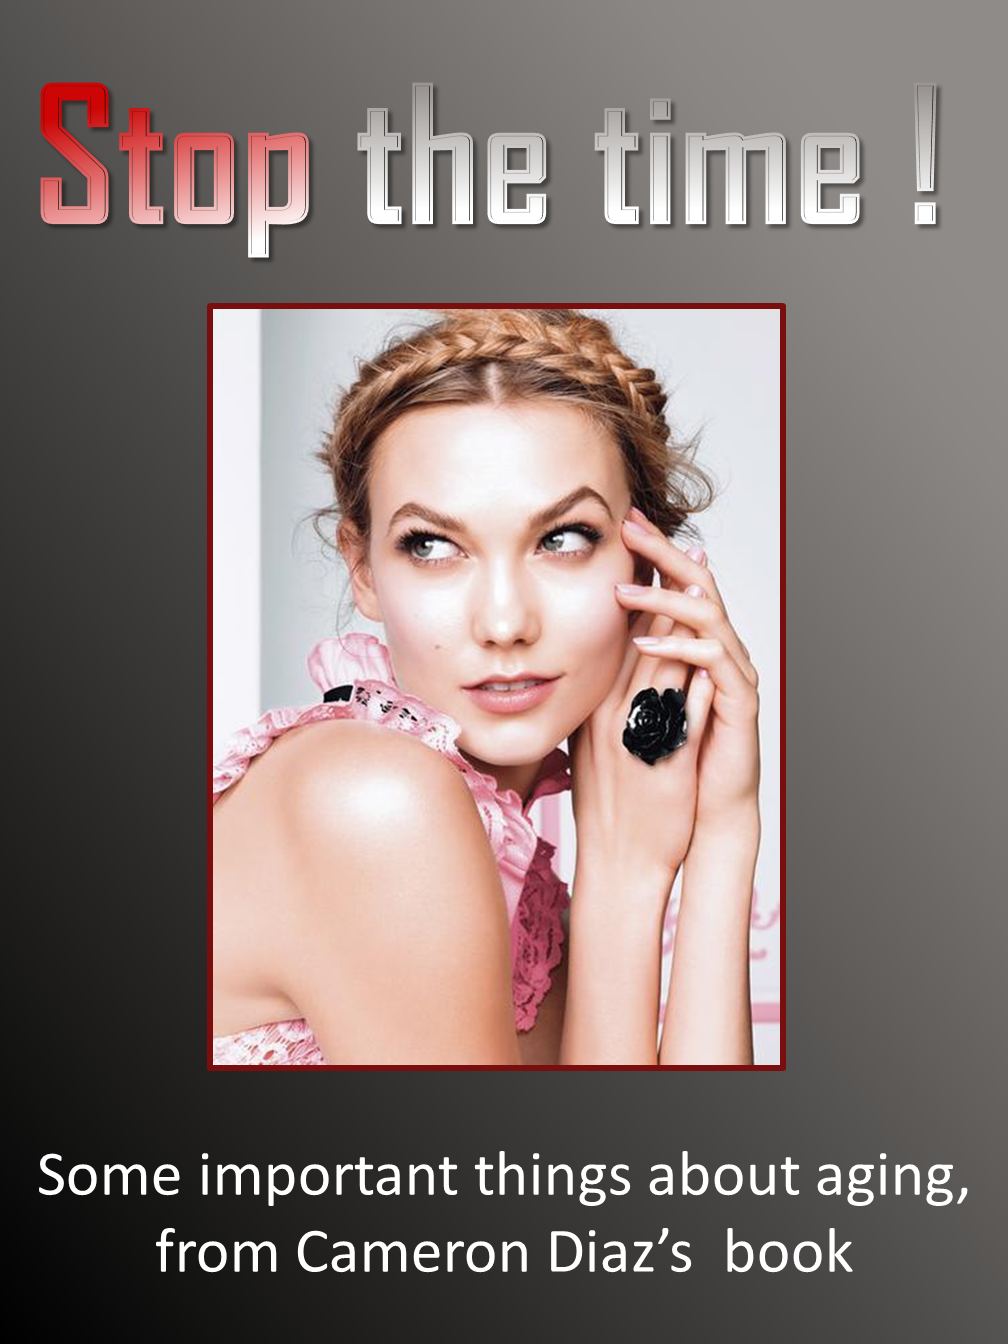 Stop the Time!